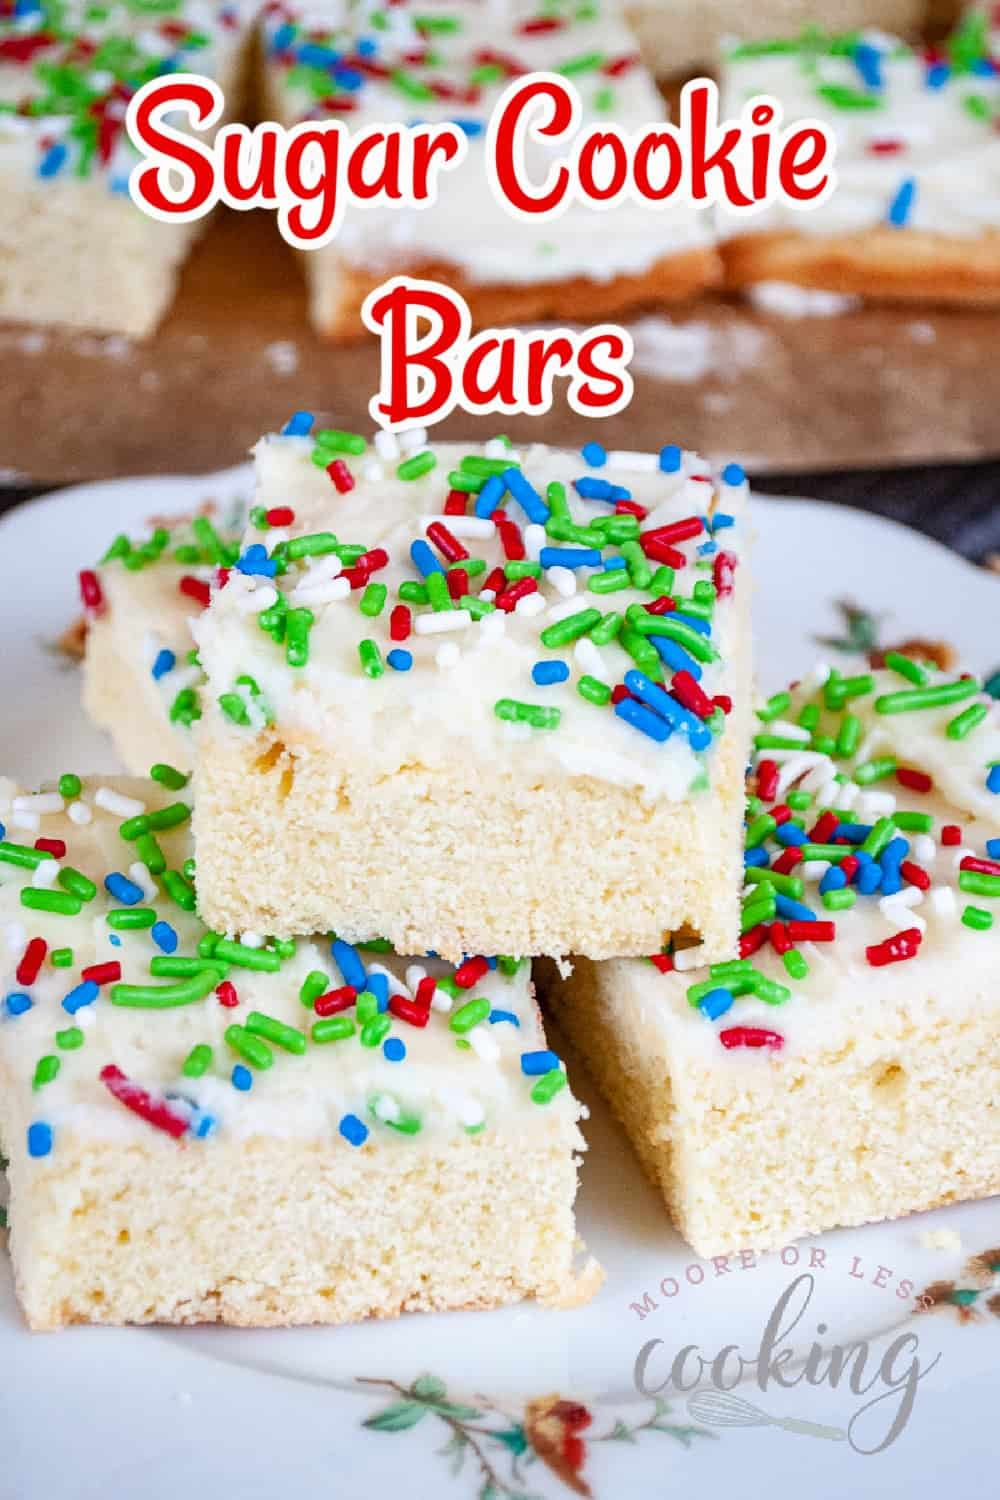 These Sugar Cookie Bars are a soft, sweet, and chewy vanilla crumb layer topped with a buttercream frosting and decorated with sprinkles. These delectable bars taste just like your favorite sugar cookie, but with a slathering of sweet and buttery icing. via @Mooreorlesscook